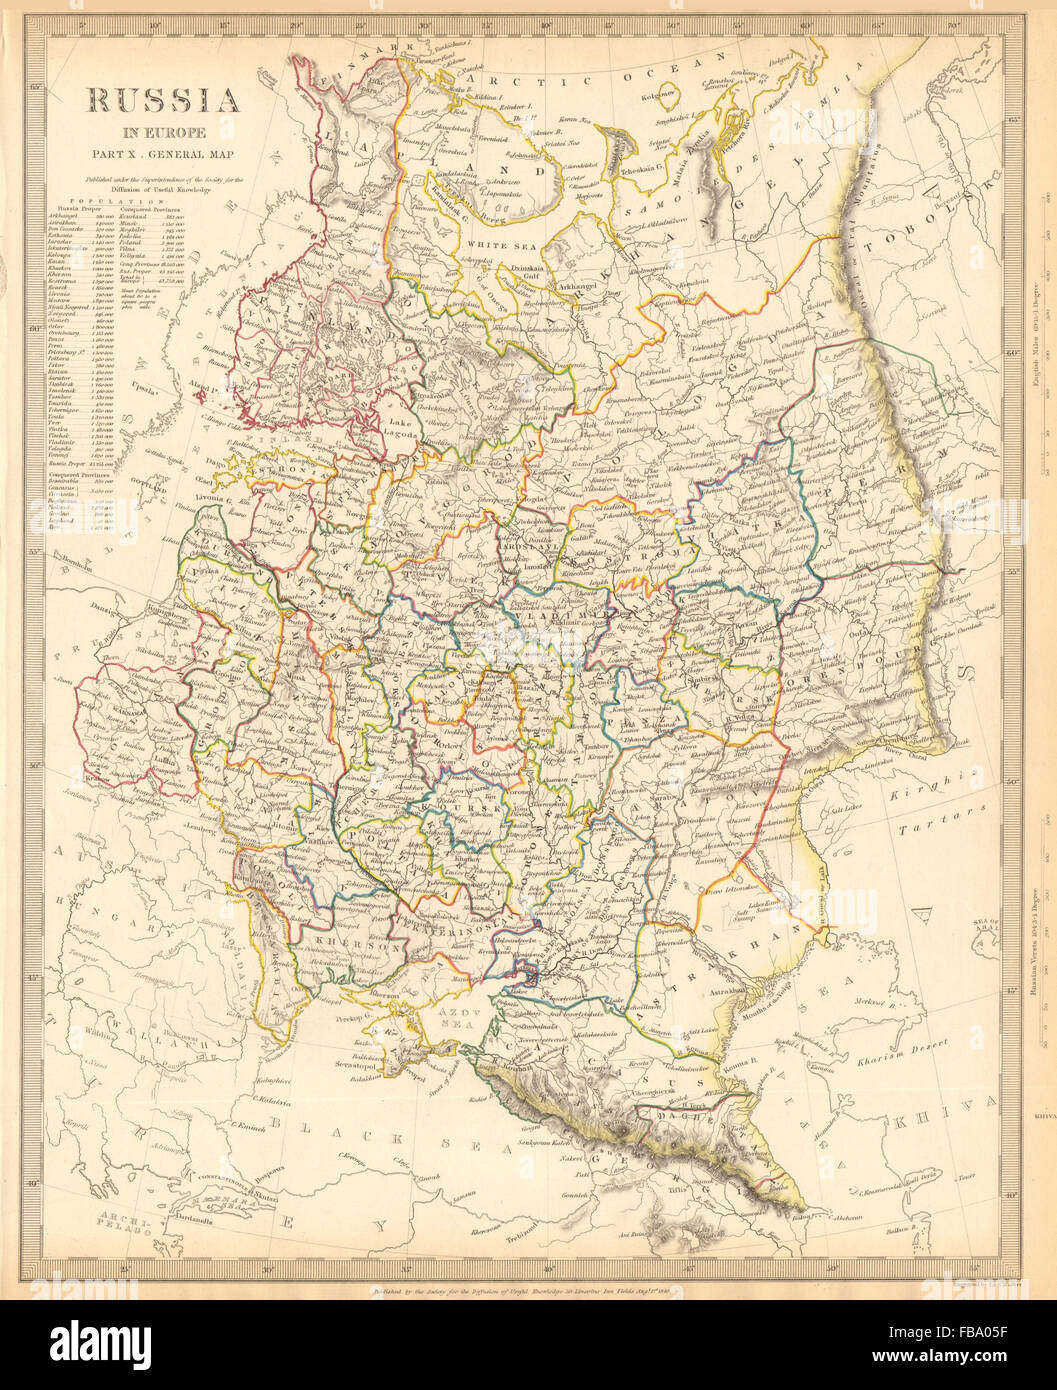 Map of russia and eastern europe stock photos map of russia and eastern europe ukraine belarus baltics finland georgia sduk 1844 map gumiabroncs Gallery